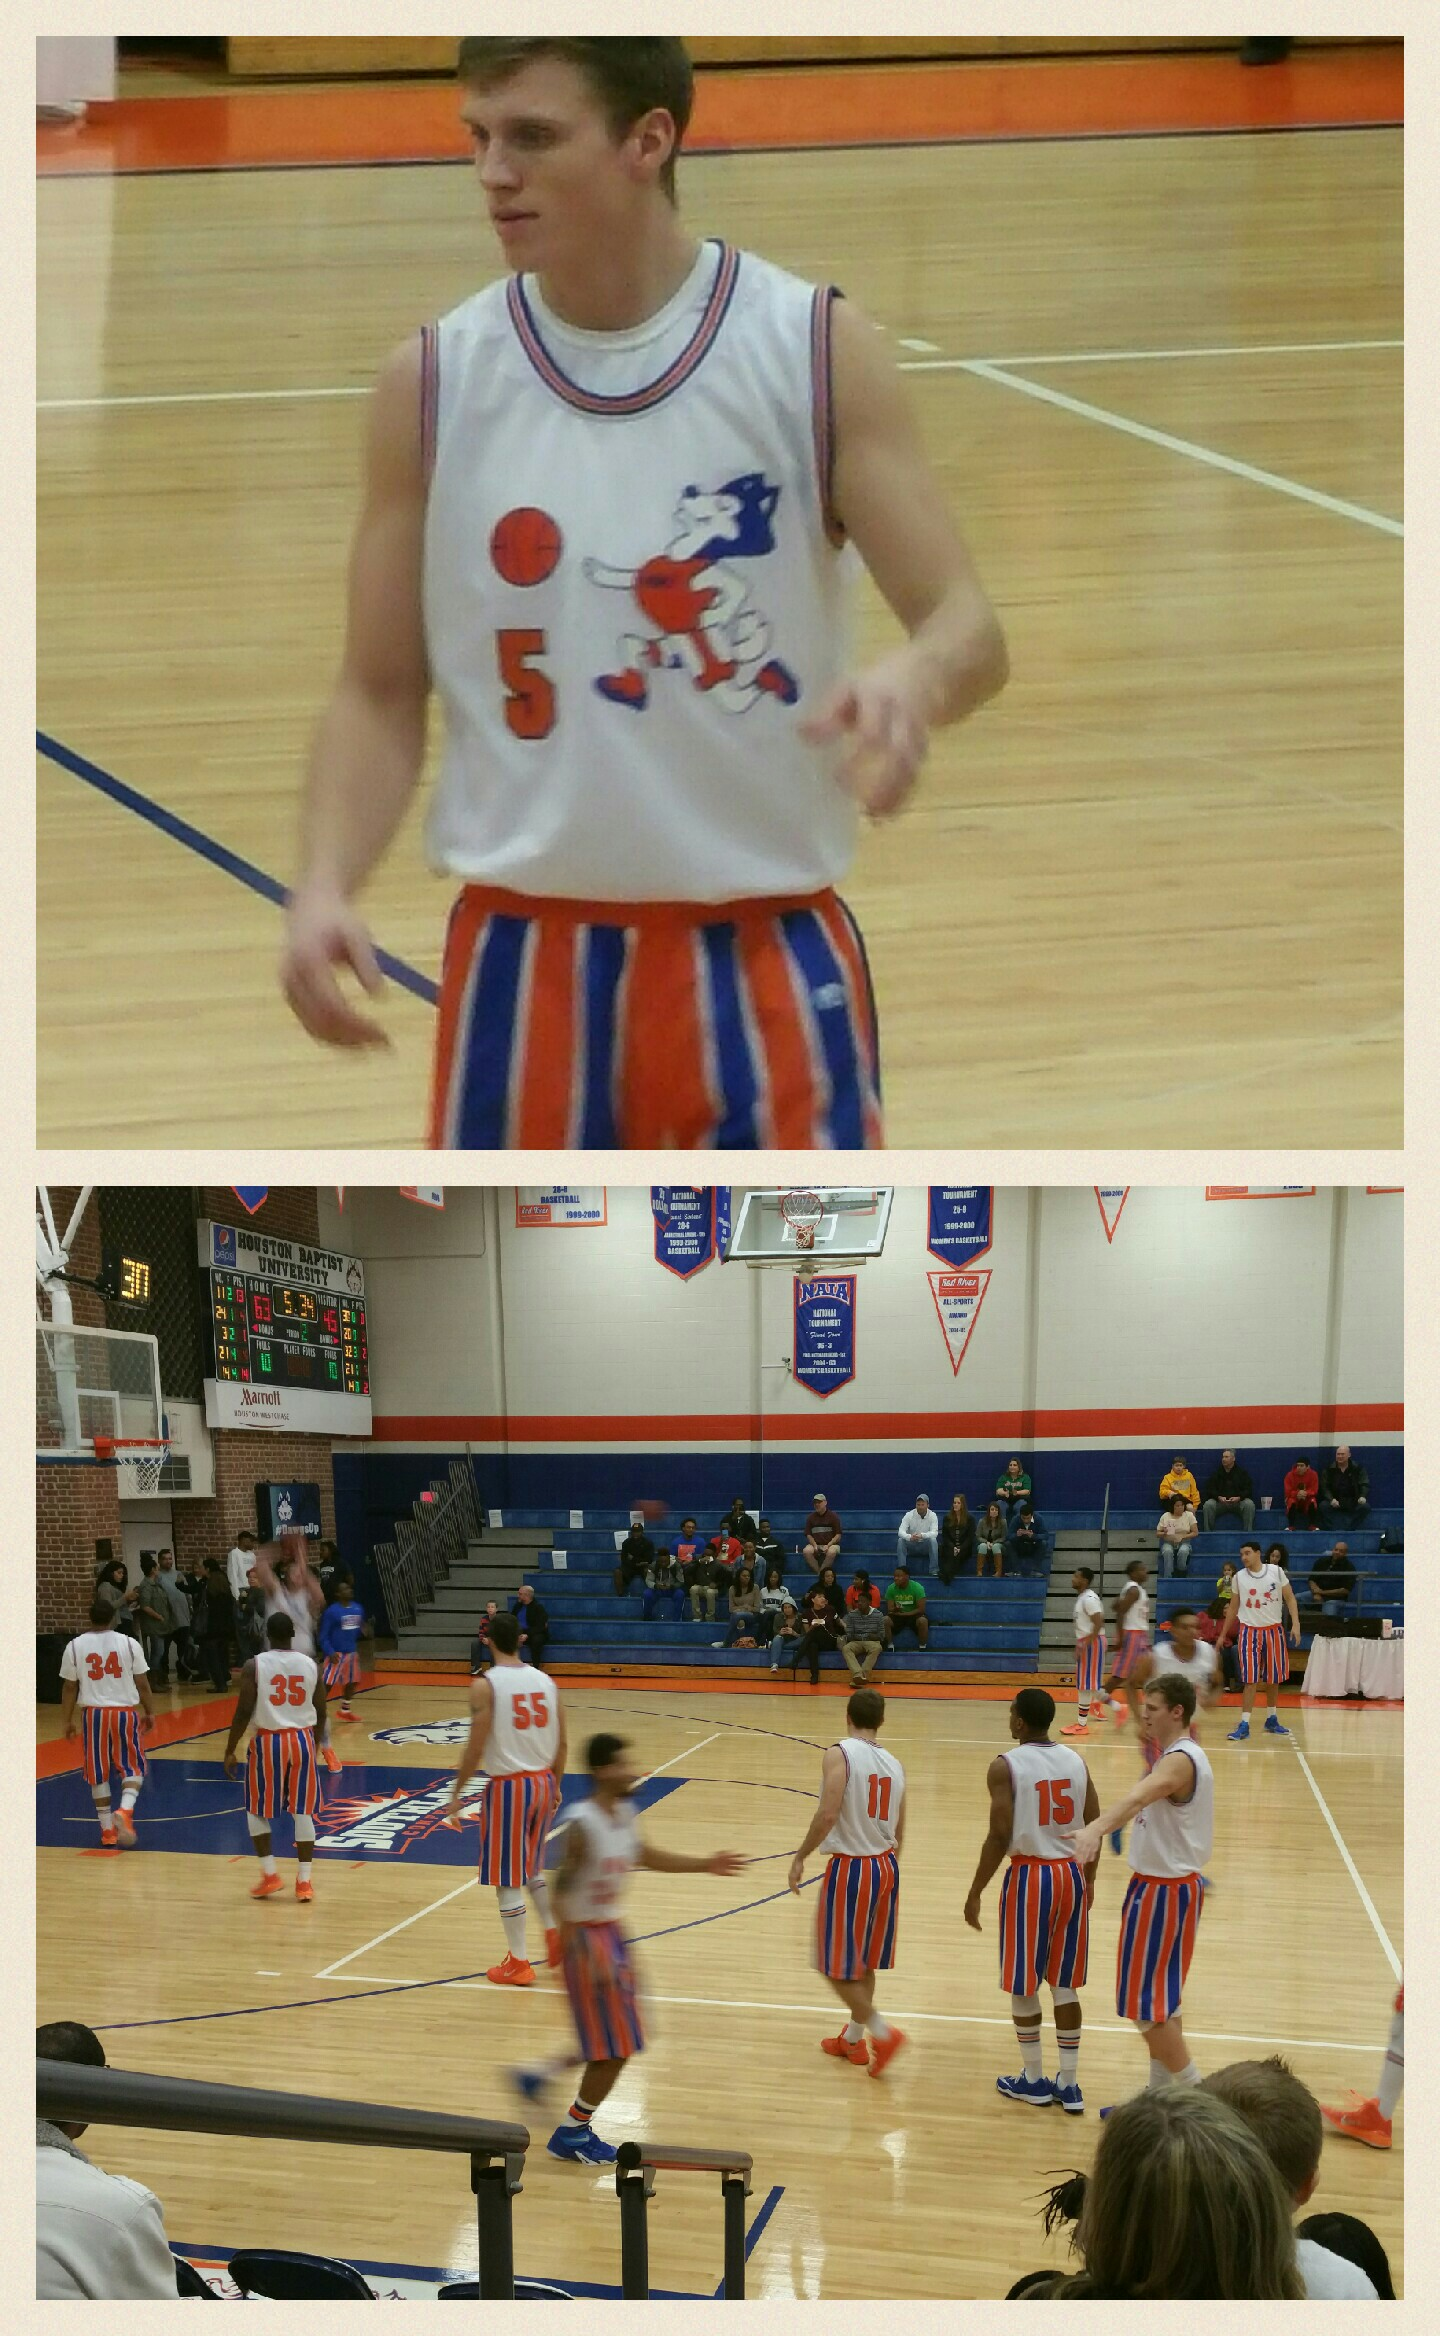 Houston Baptist just came out wearing the greatest uniforms ever as they salute their teams of the 60's and 70's.